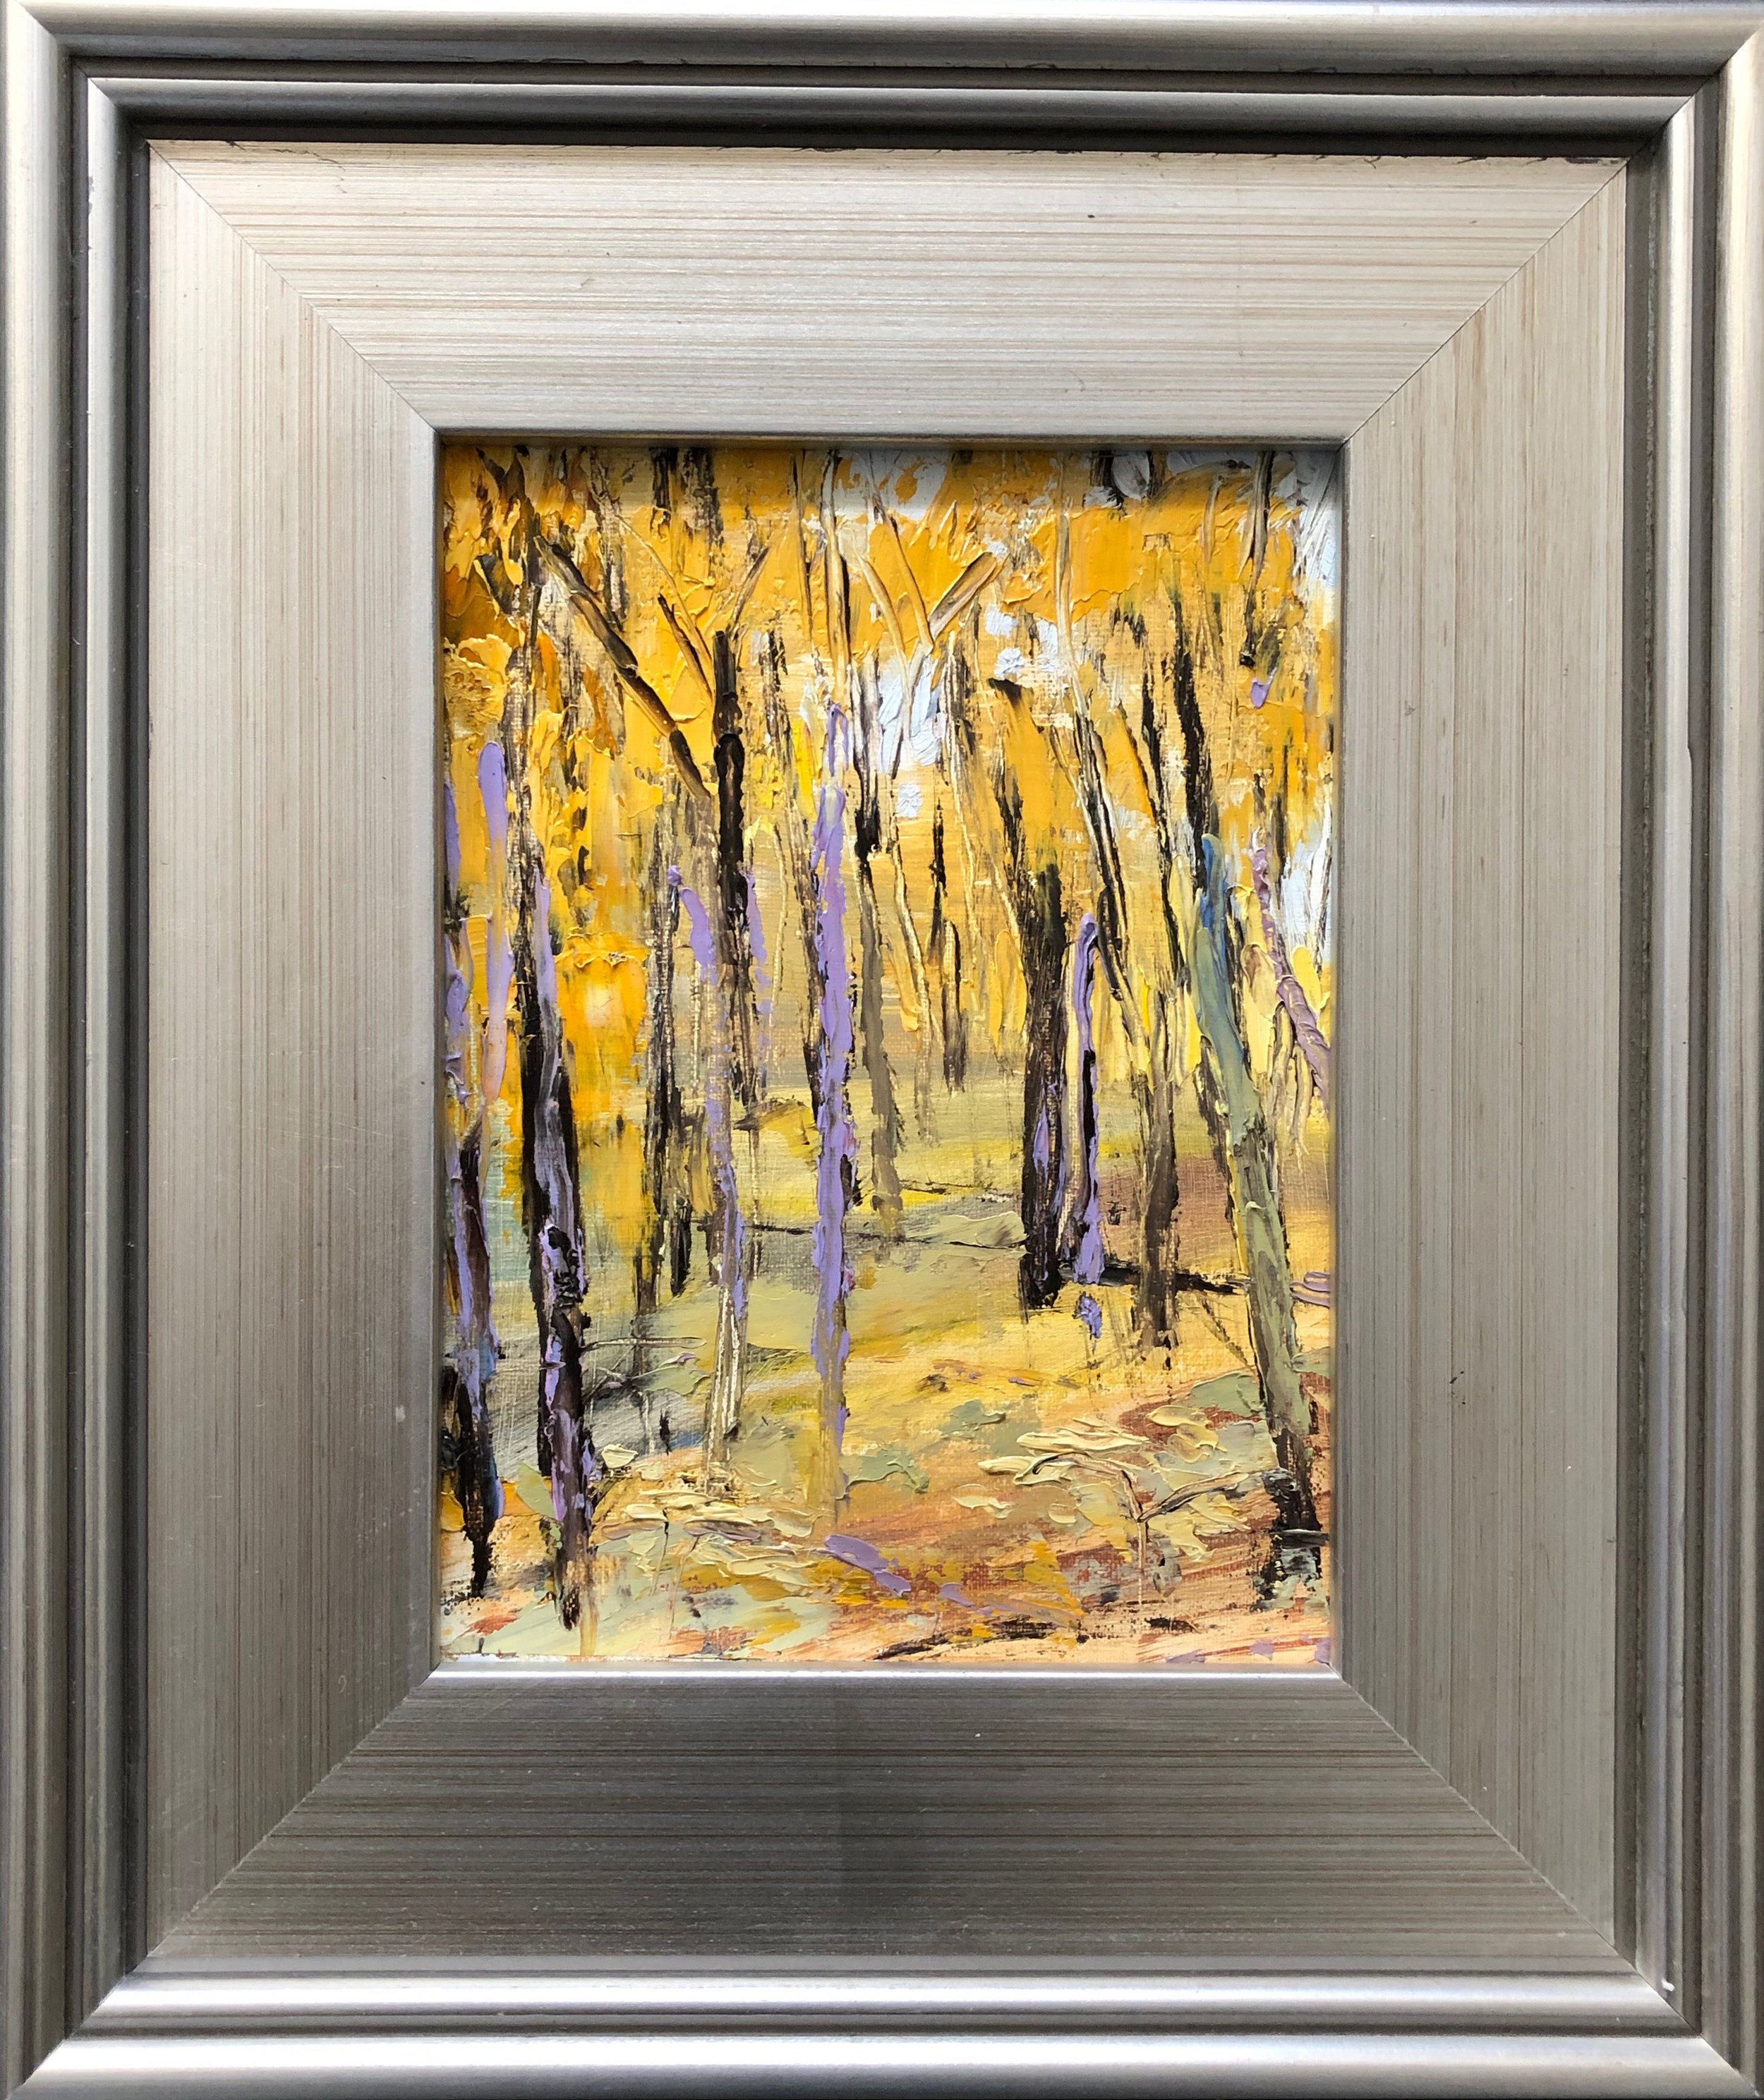 Gallery - For Purchase Works of ArtAvailable Fall 2019